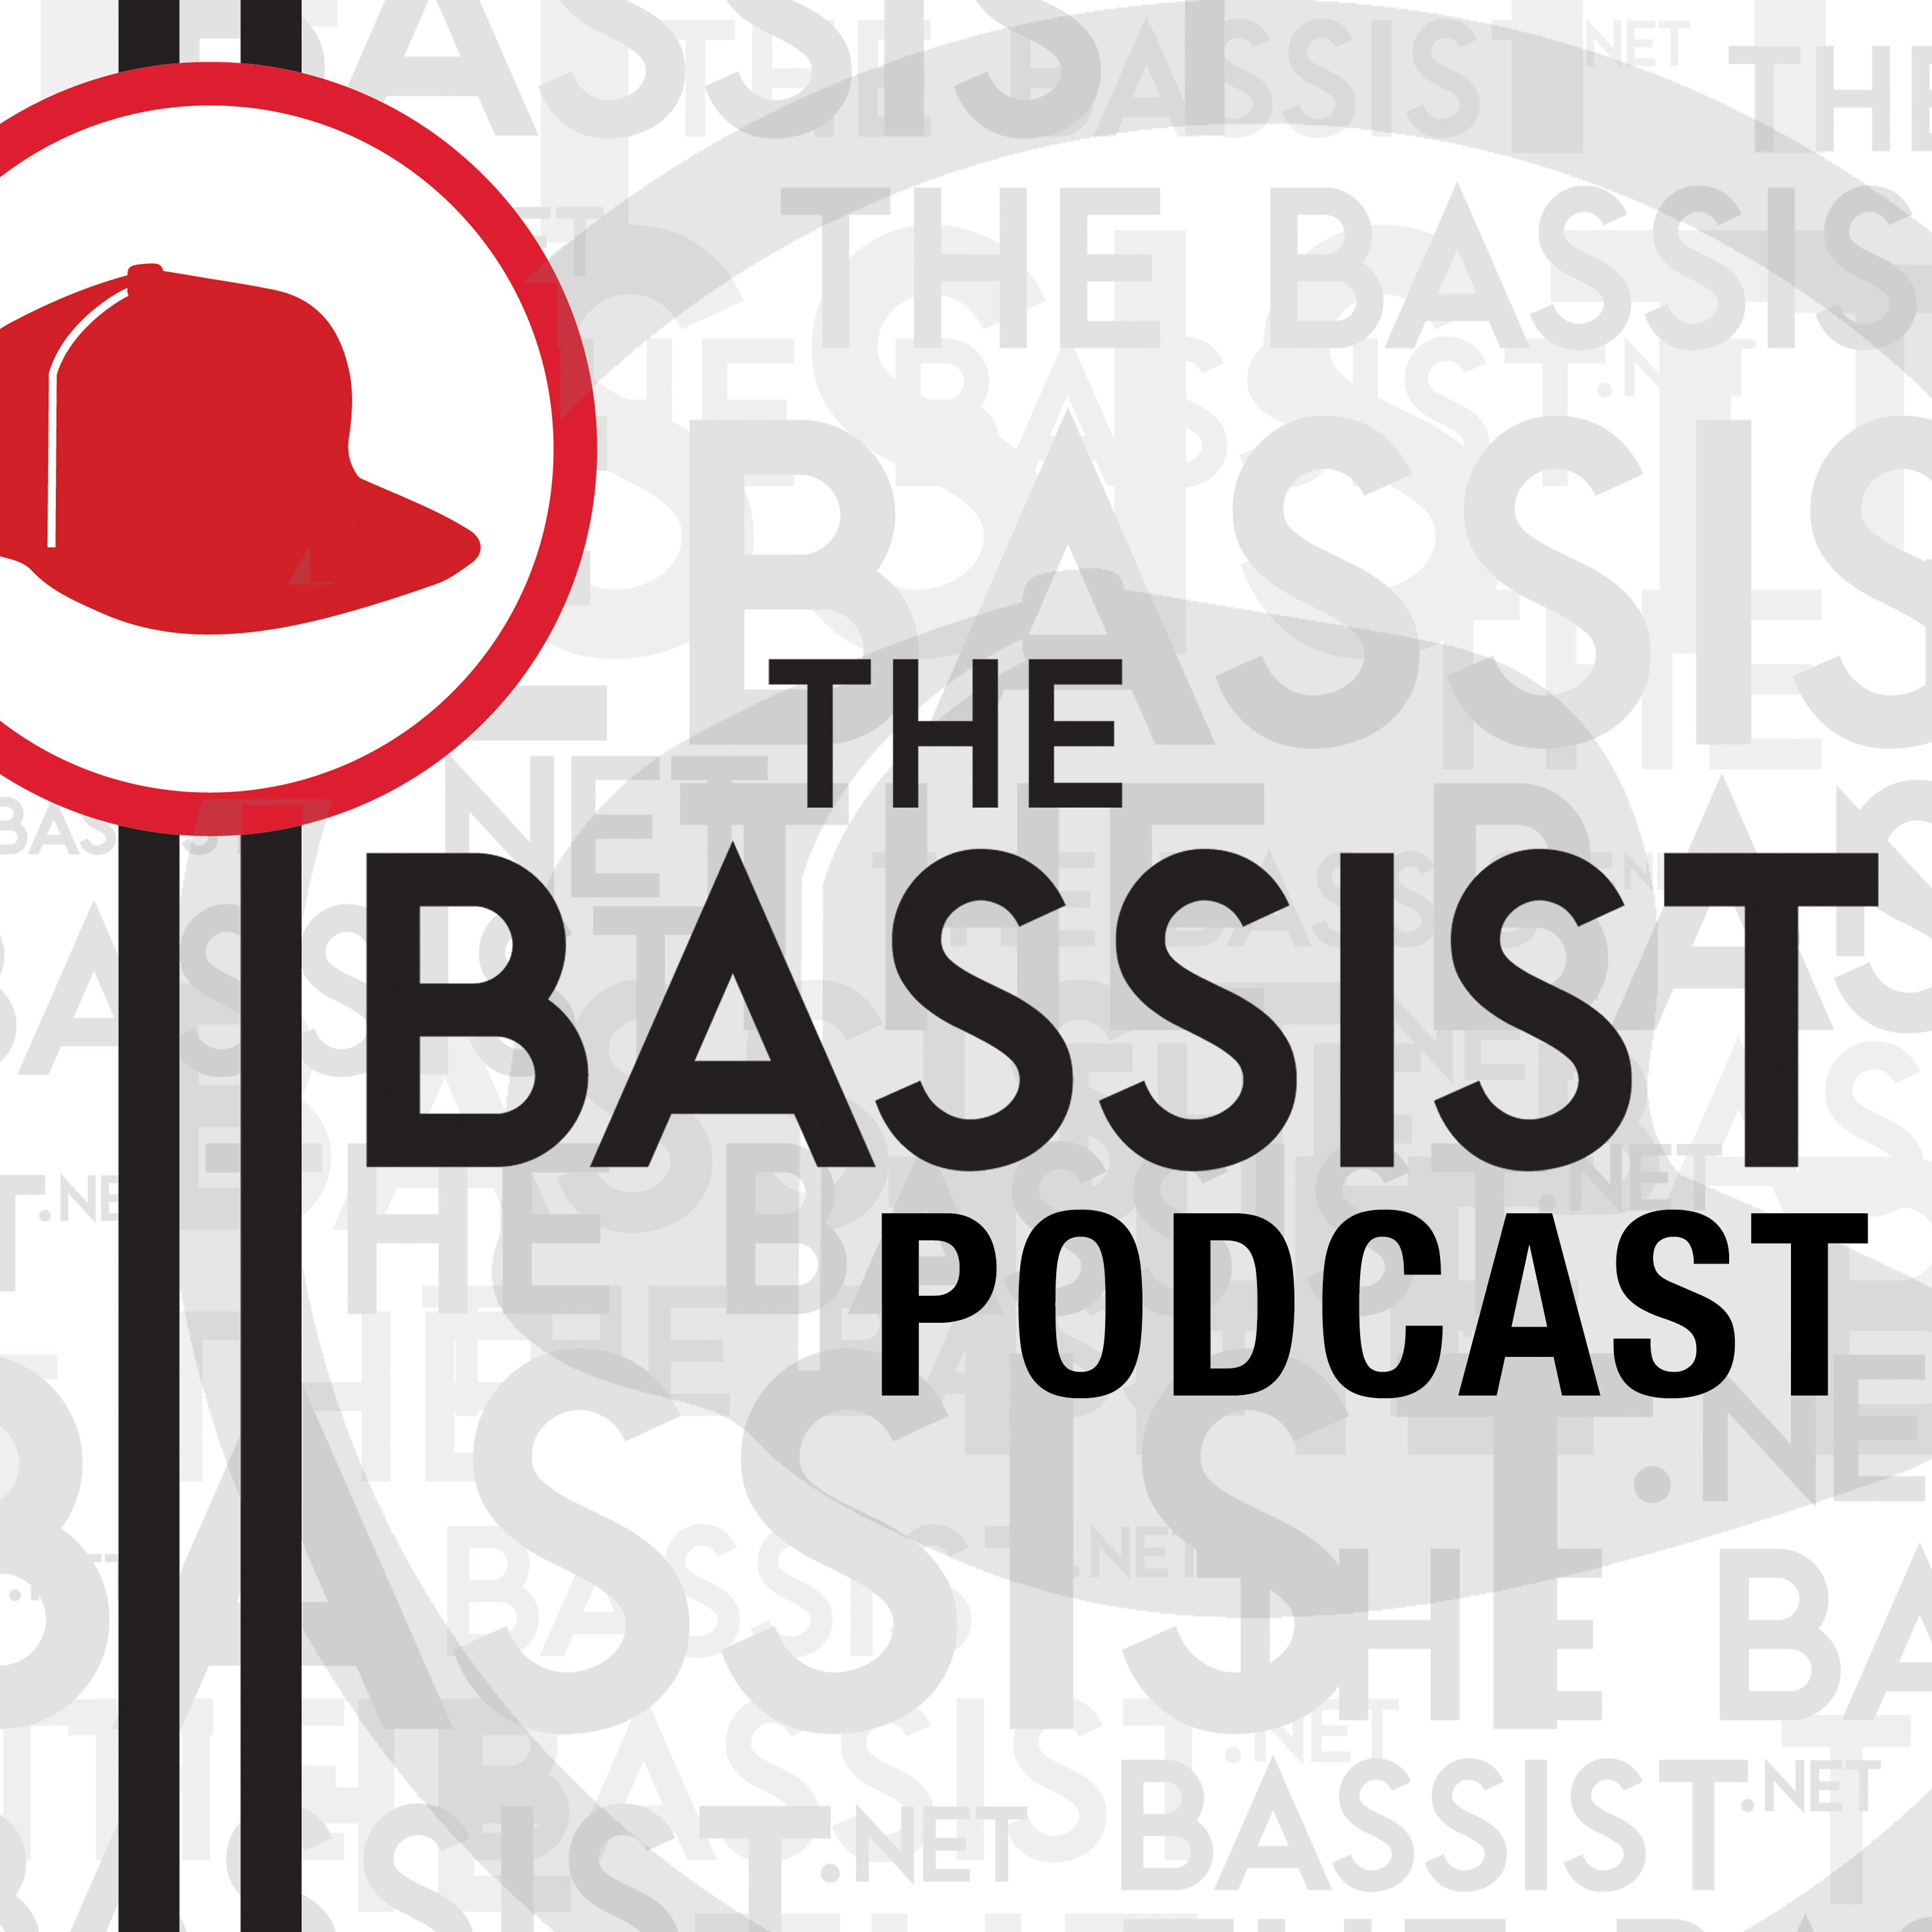 The Bassist Podcast